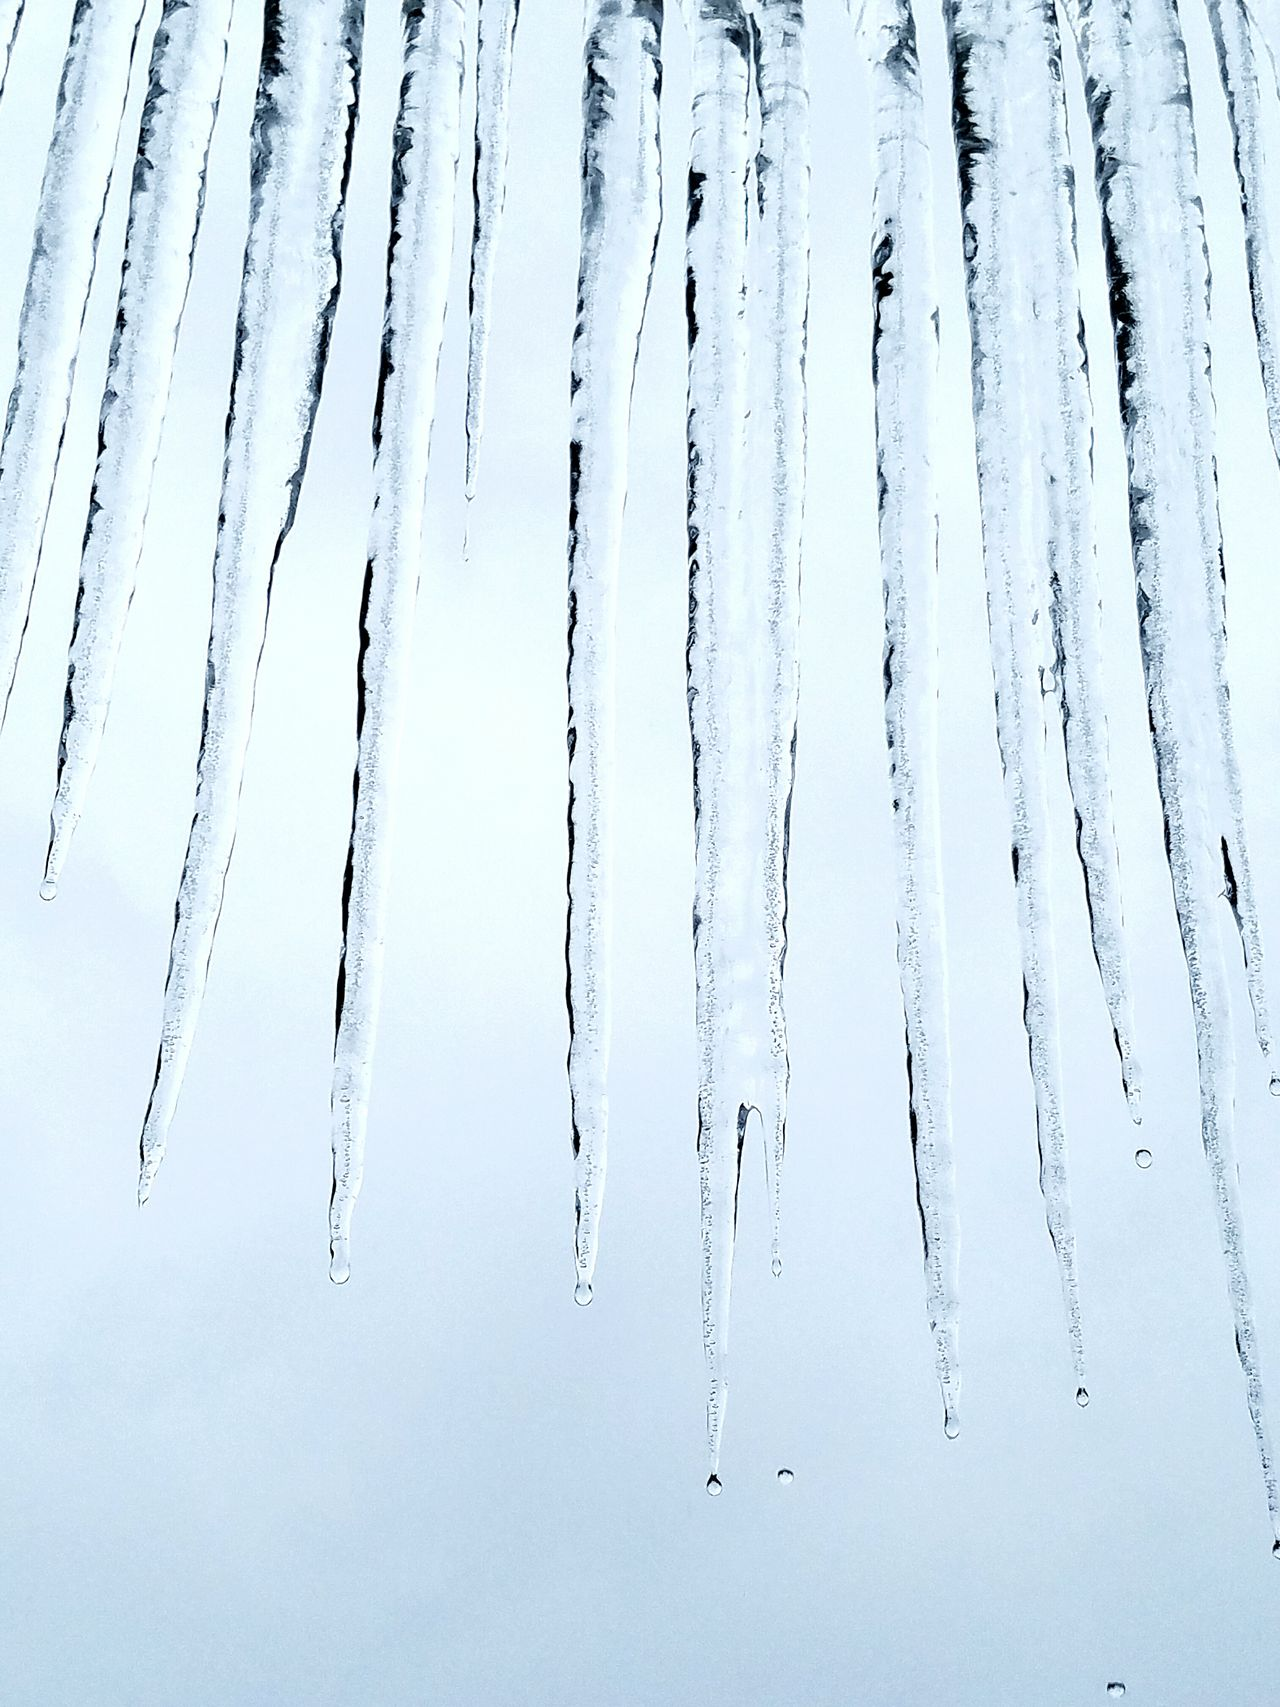 No People Water Cold Temperature Day Outdoors Ice Icicles Icicle Clear White